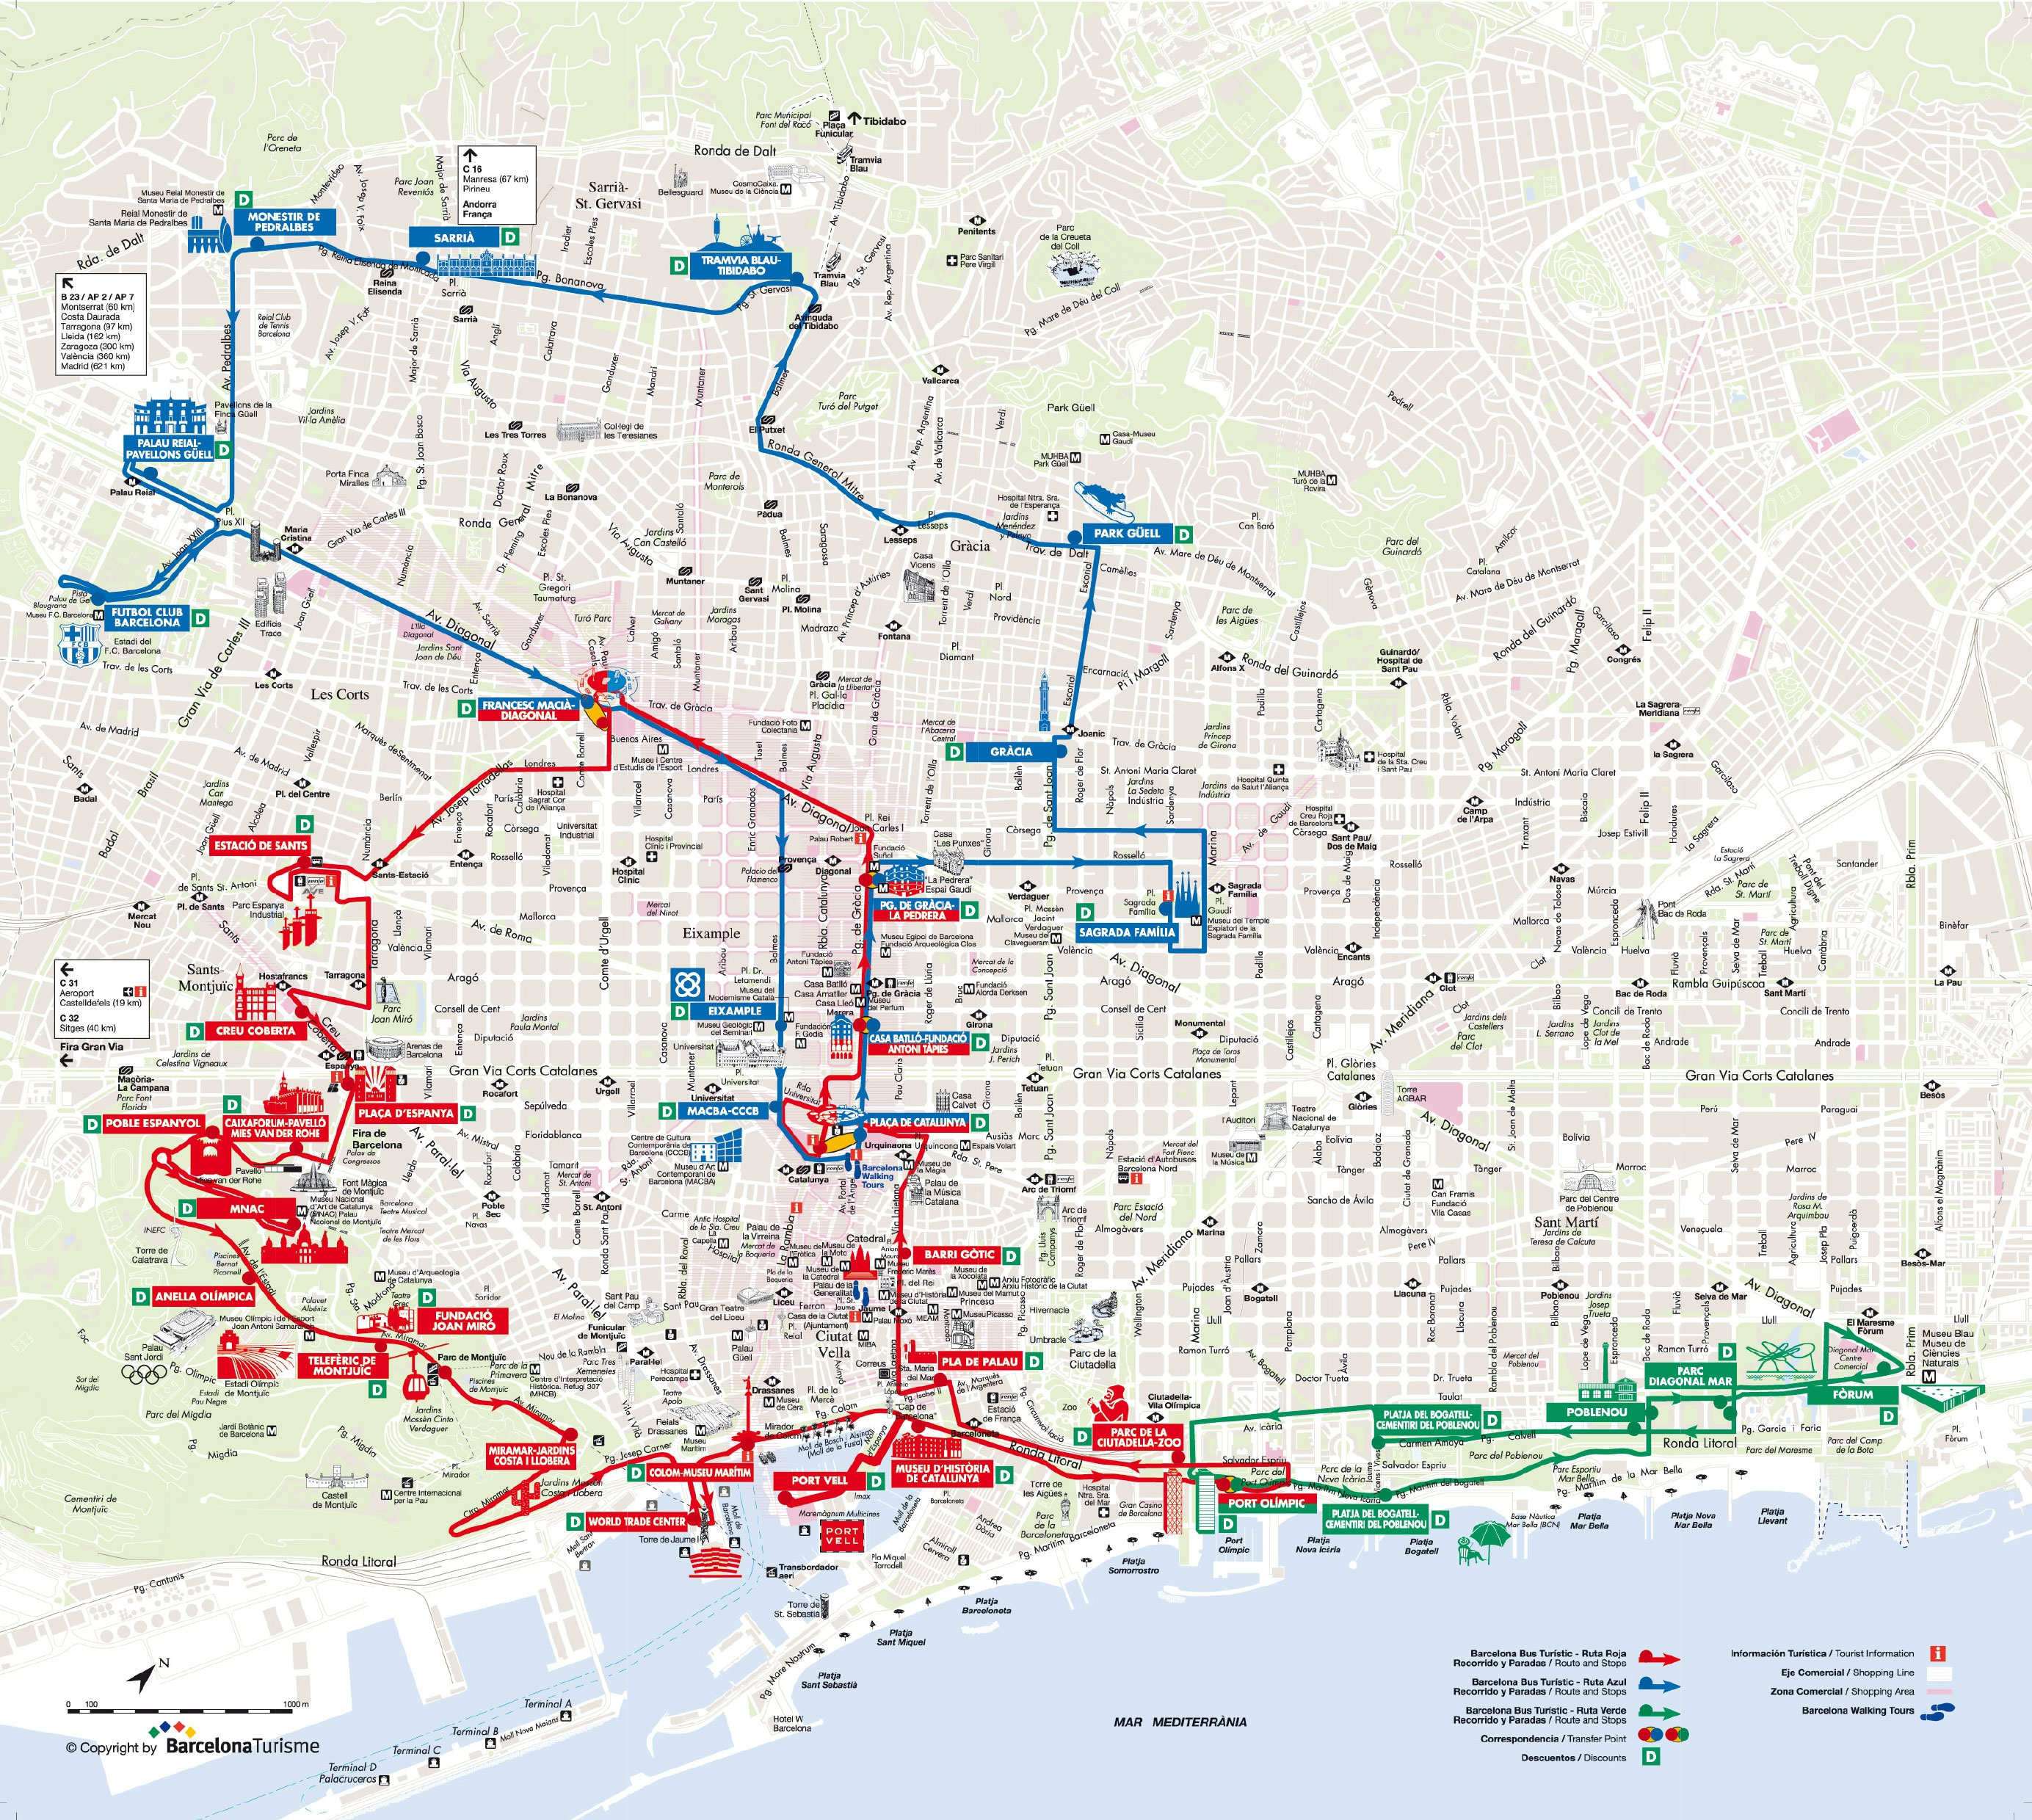 map of barcelona hop on hop off bus tour with bus turistic